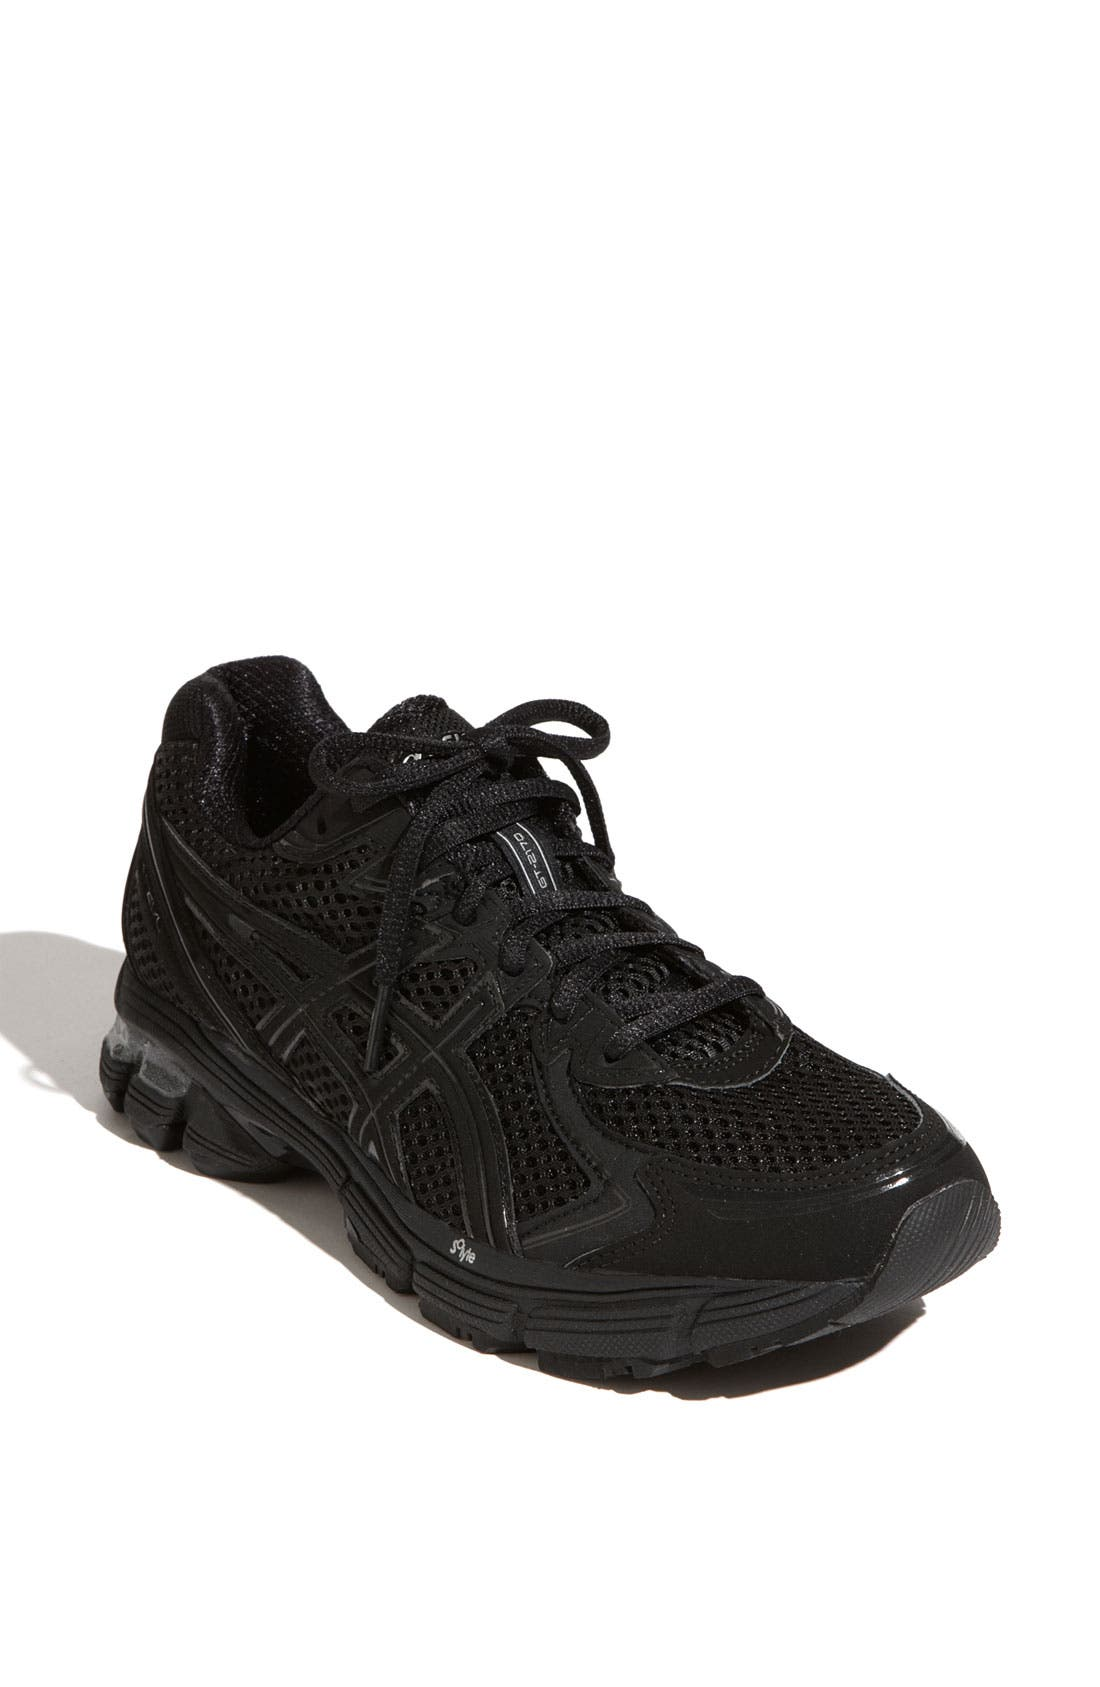 Main Image - ASICS® 'GT 2170' Running Shoe (Men)